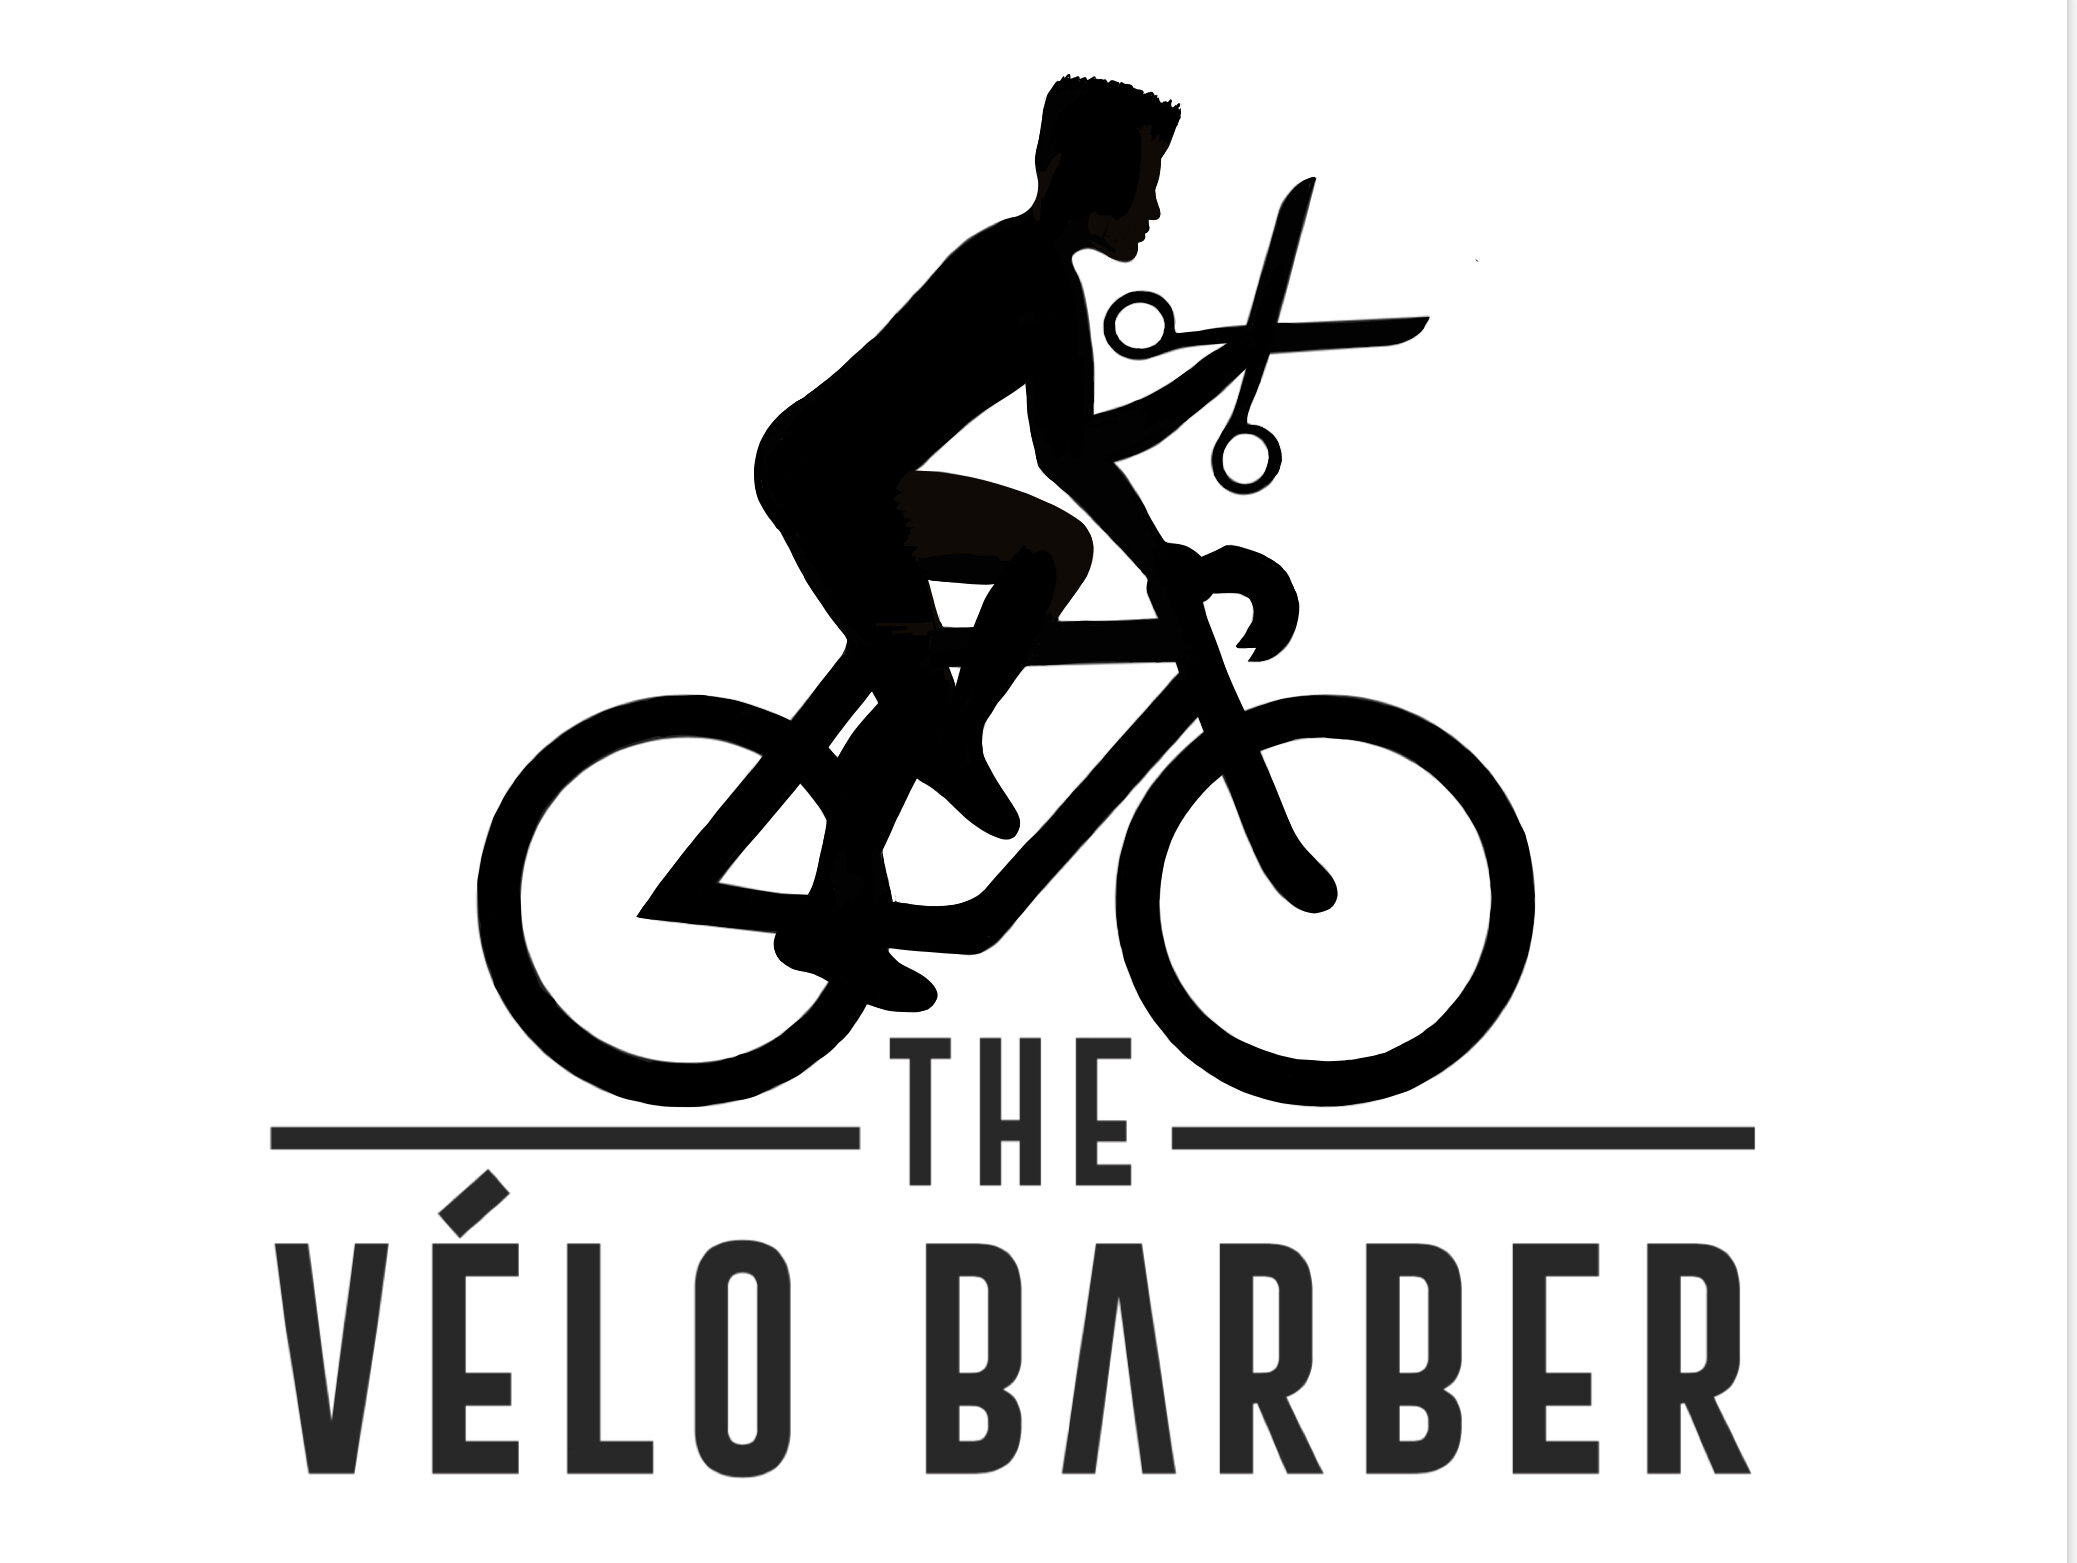 The VELO BARBER Full.jpeg